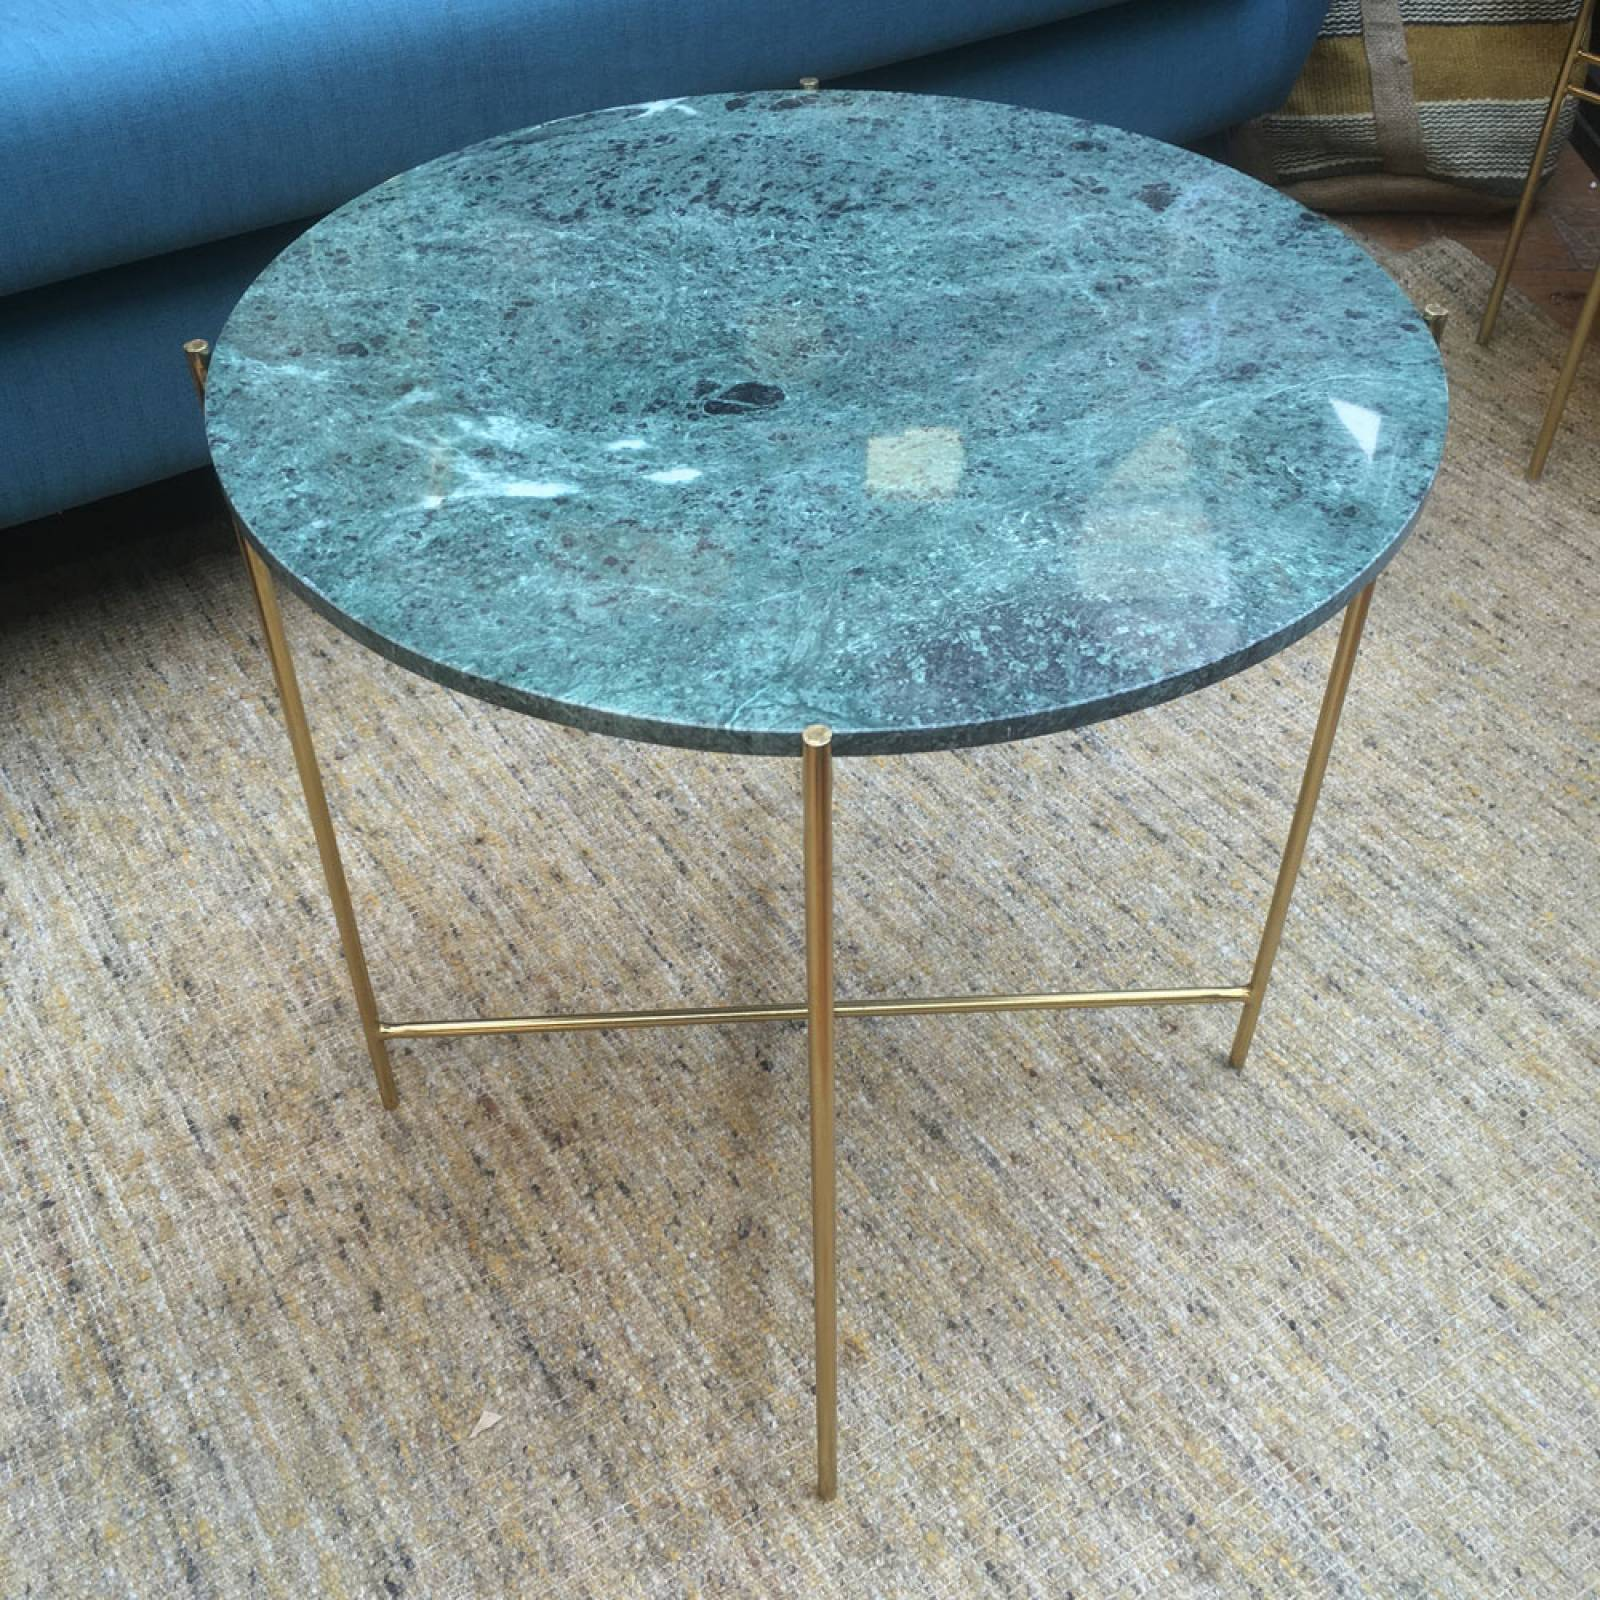 Large Circular Green Marble Table Gold Legs   Delivery Surcharge